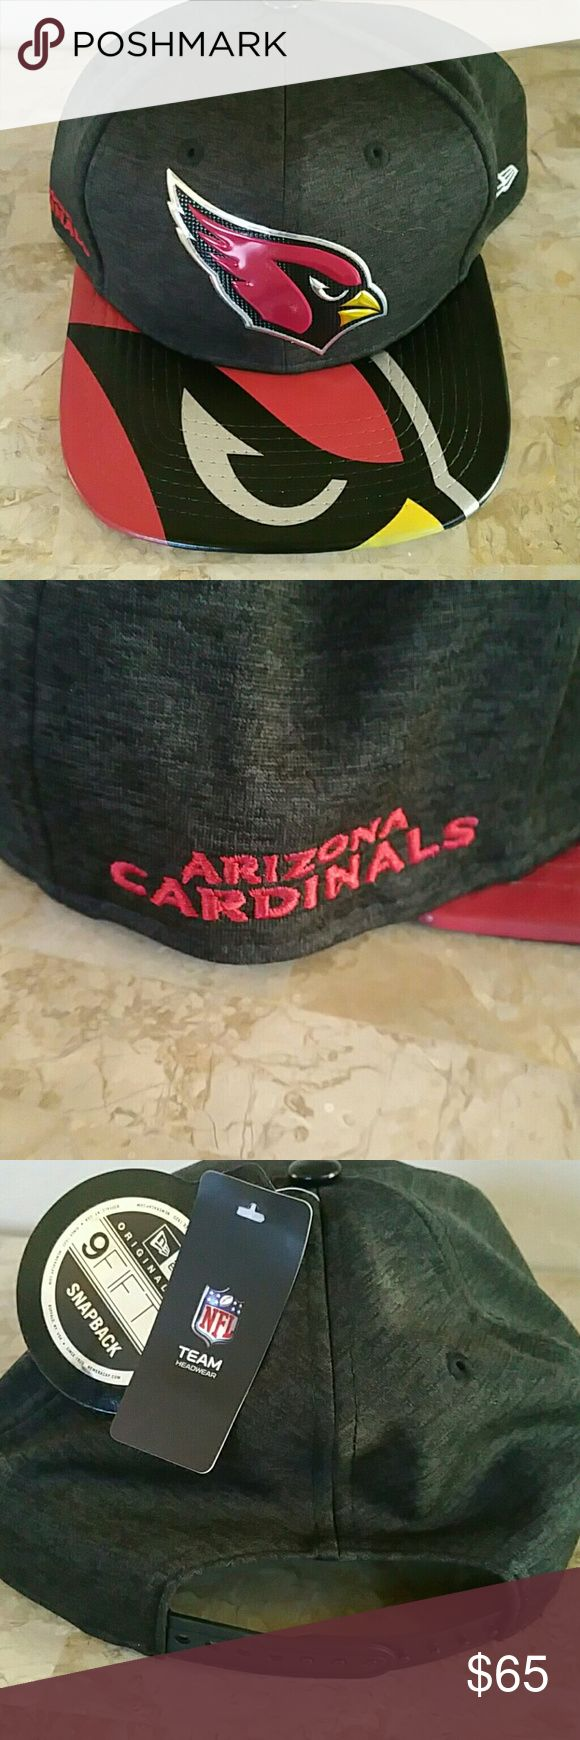 Authentic NFL Arizona Cardinal Hat NWT Brand new.  With tags.   Never worn.  Adjustable. nfl Accessories Hats